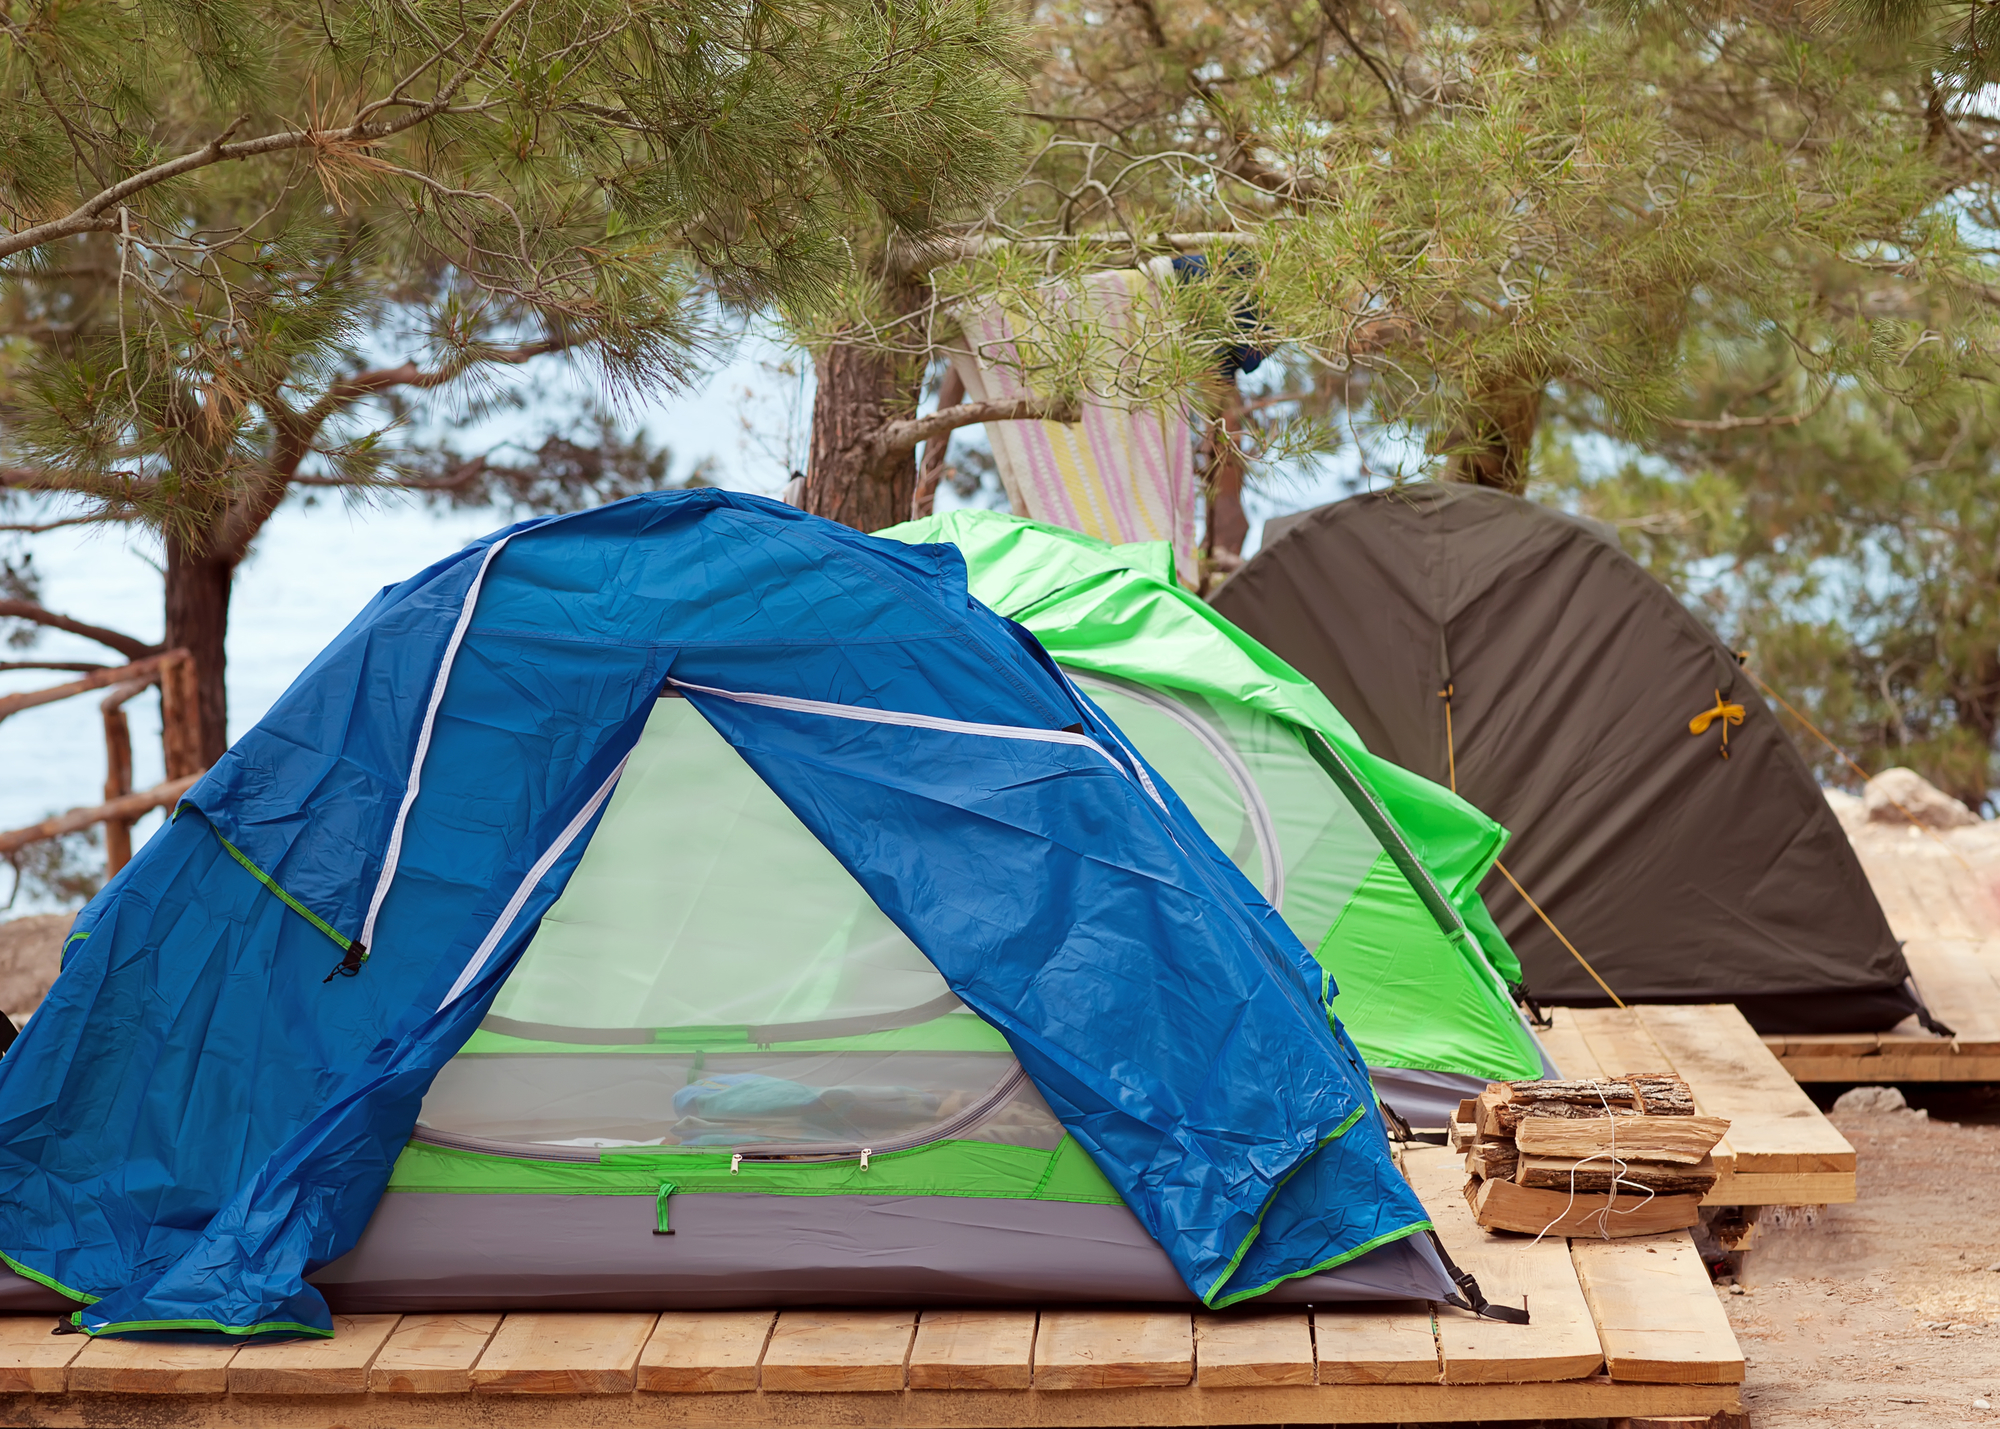 5 Best 3-Room Tents According To Structure, Material, And Functionality